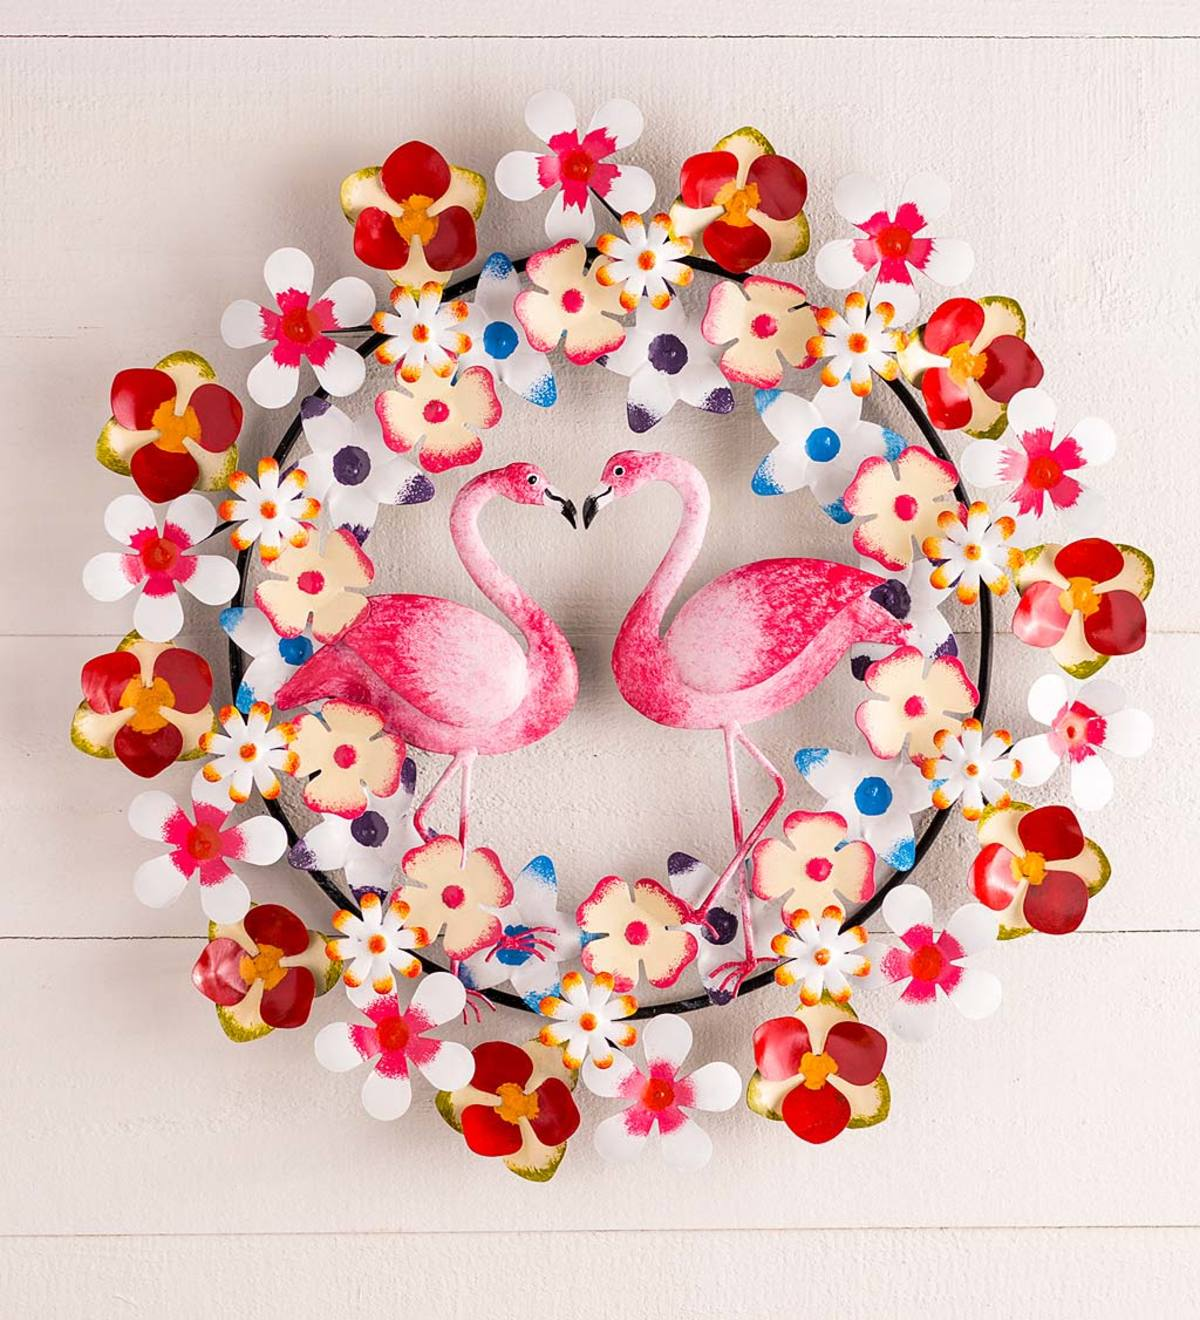 Handcrafted Colorful Metal Flower Wreath with Flamingo Duo